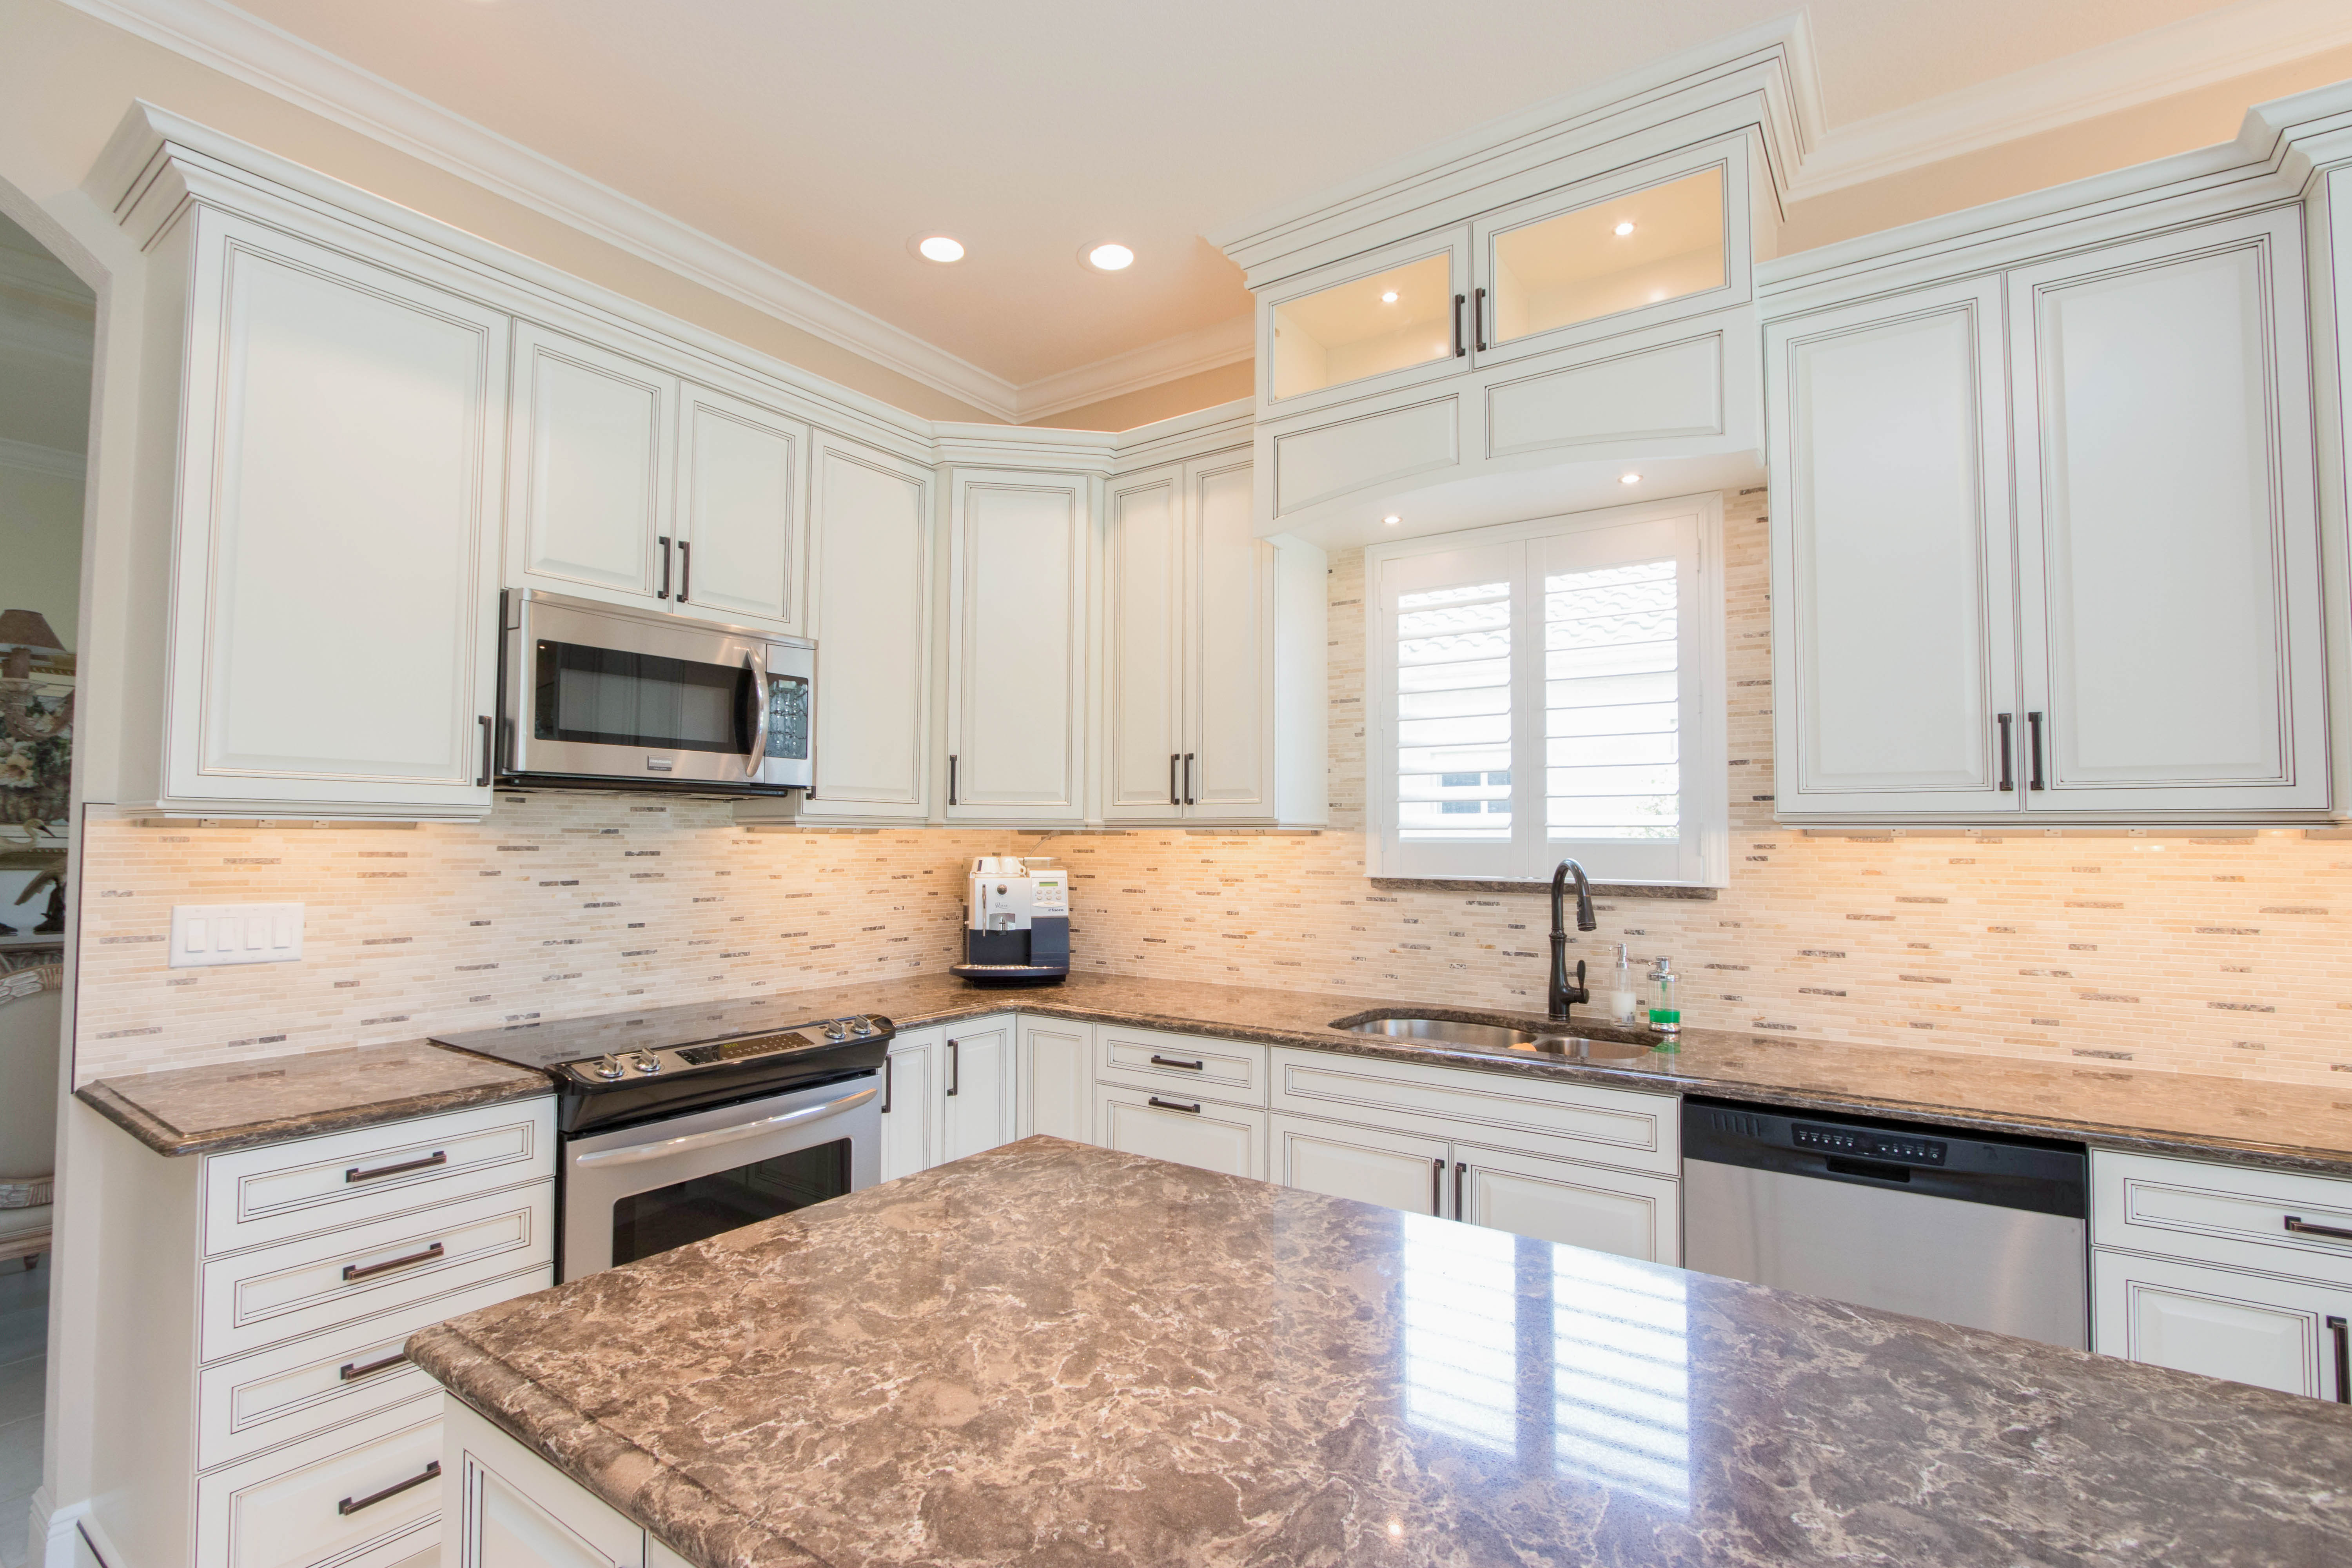 Foxberry Cabinet Genies Kitchen And Bathroom Remodeling Cape Coral Fl